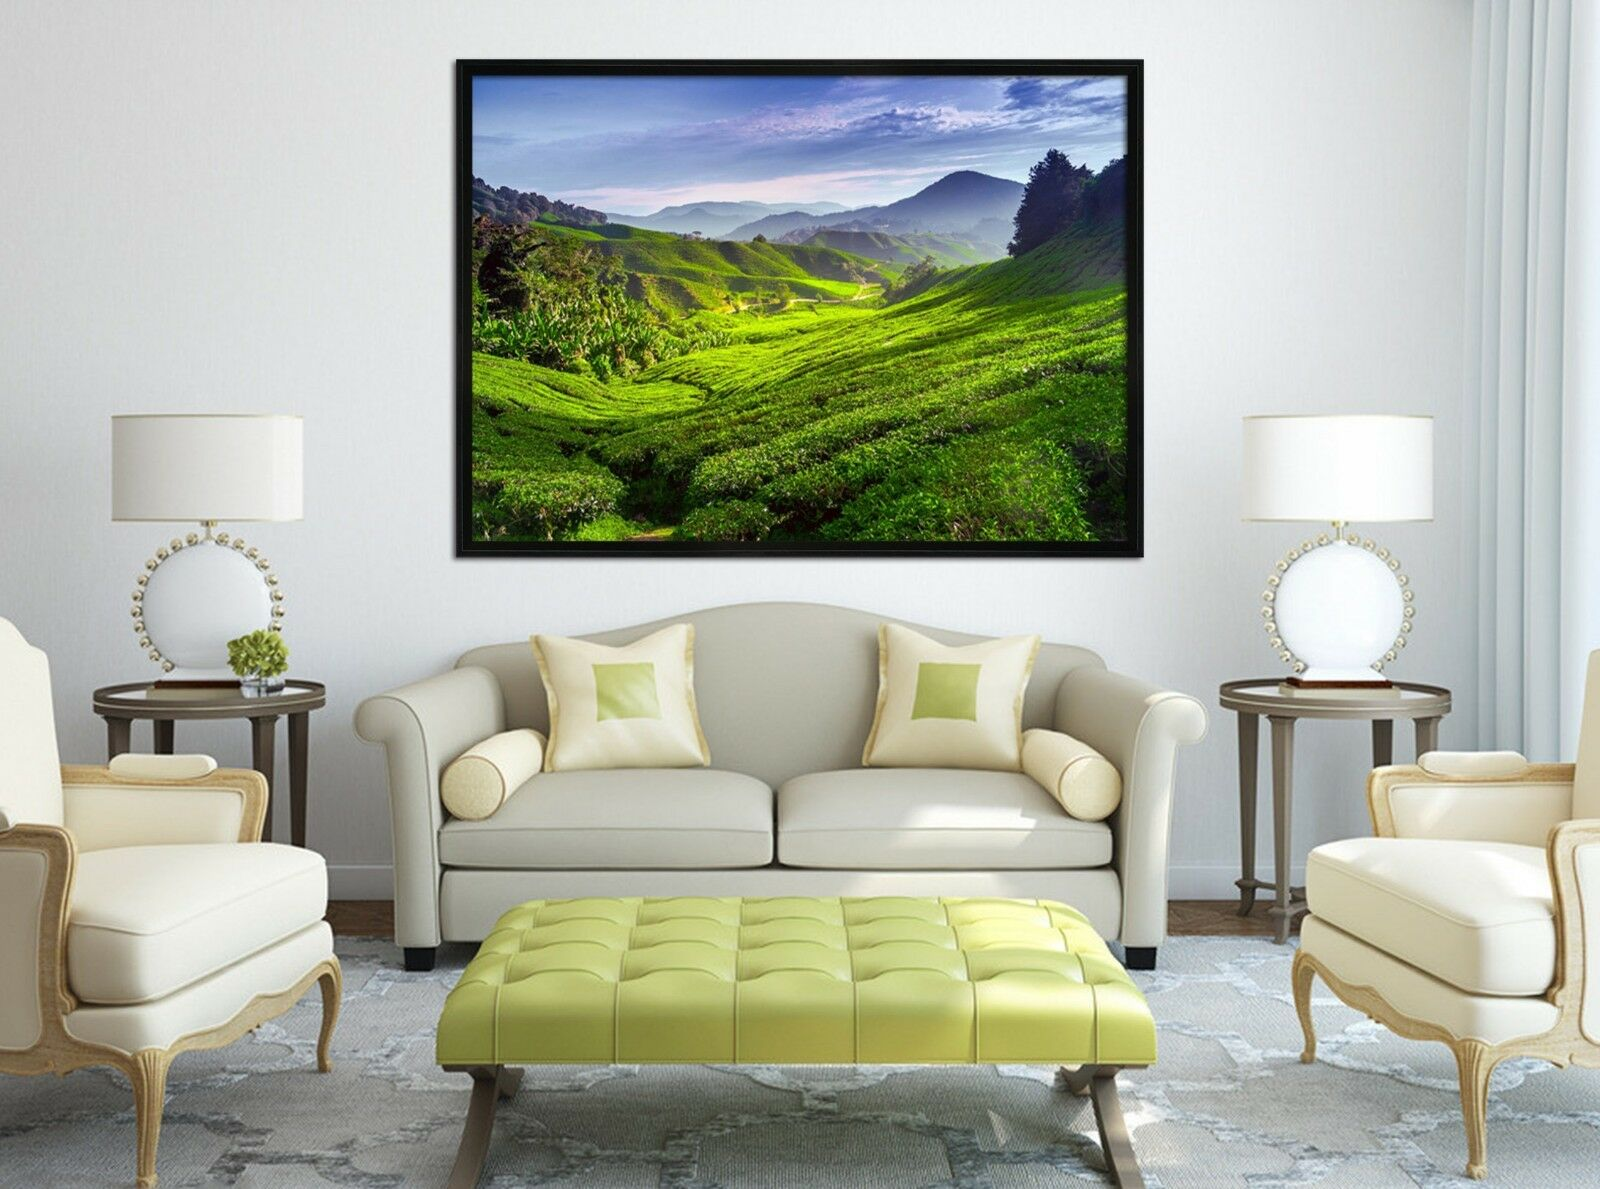 3D vert Nature Scenery 2 Framed Poster Home Decor Print Painting Art WALLPAPER